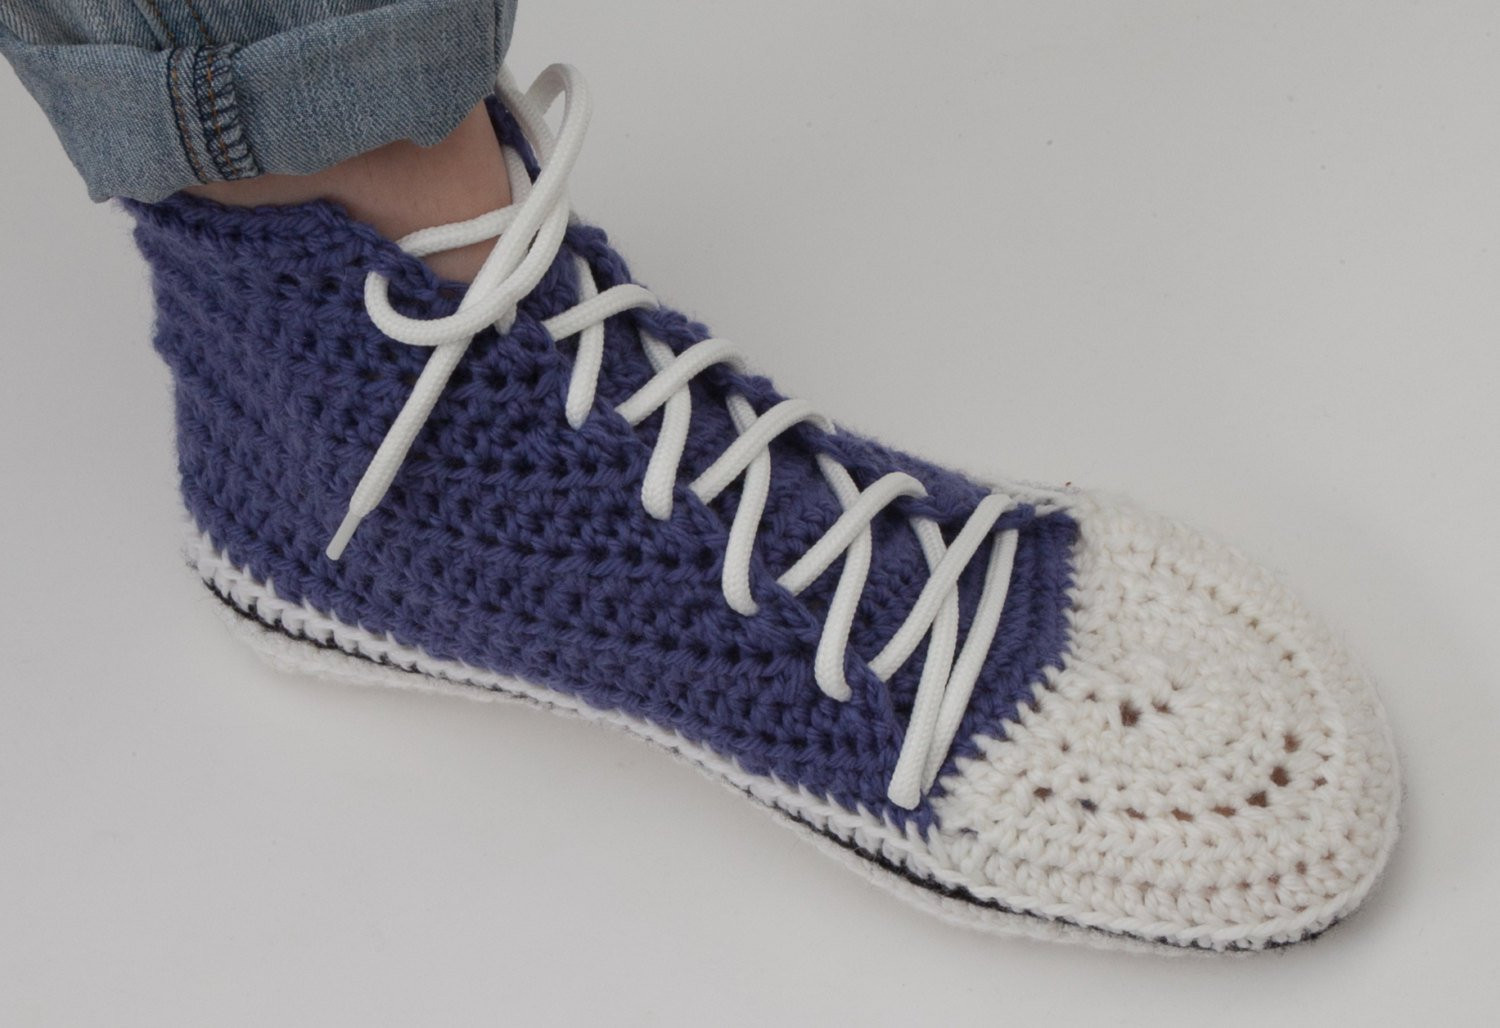 Crochet Sneakers Unique High Rise Sneakers Slippers Crochet Pattern Women S Sizes Of Gorgeous 50 Pics Crochet Sneakers